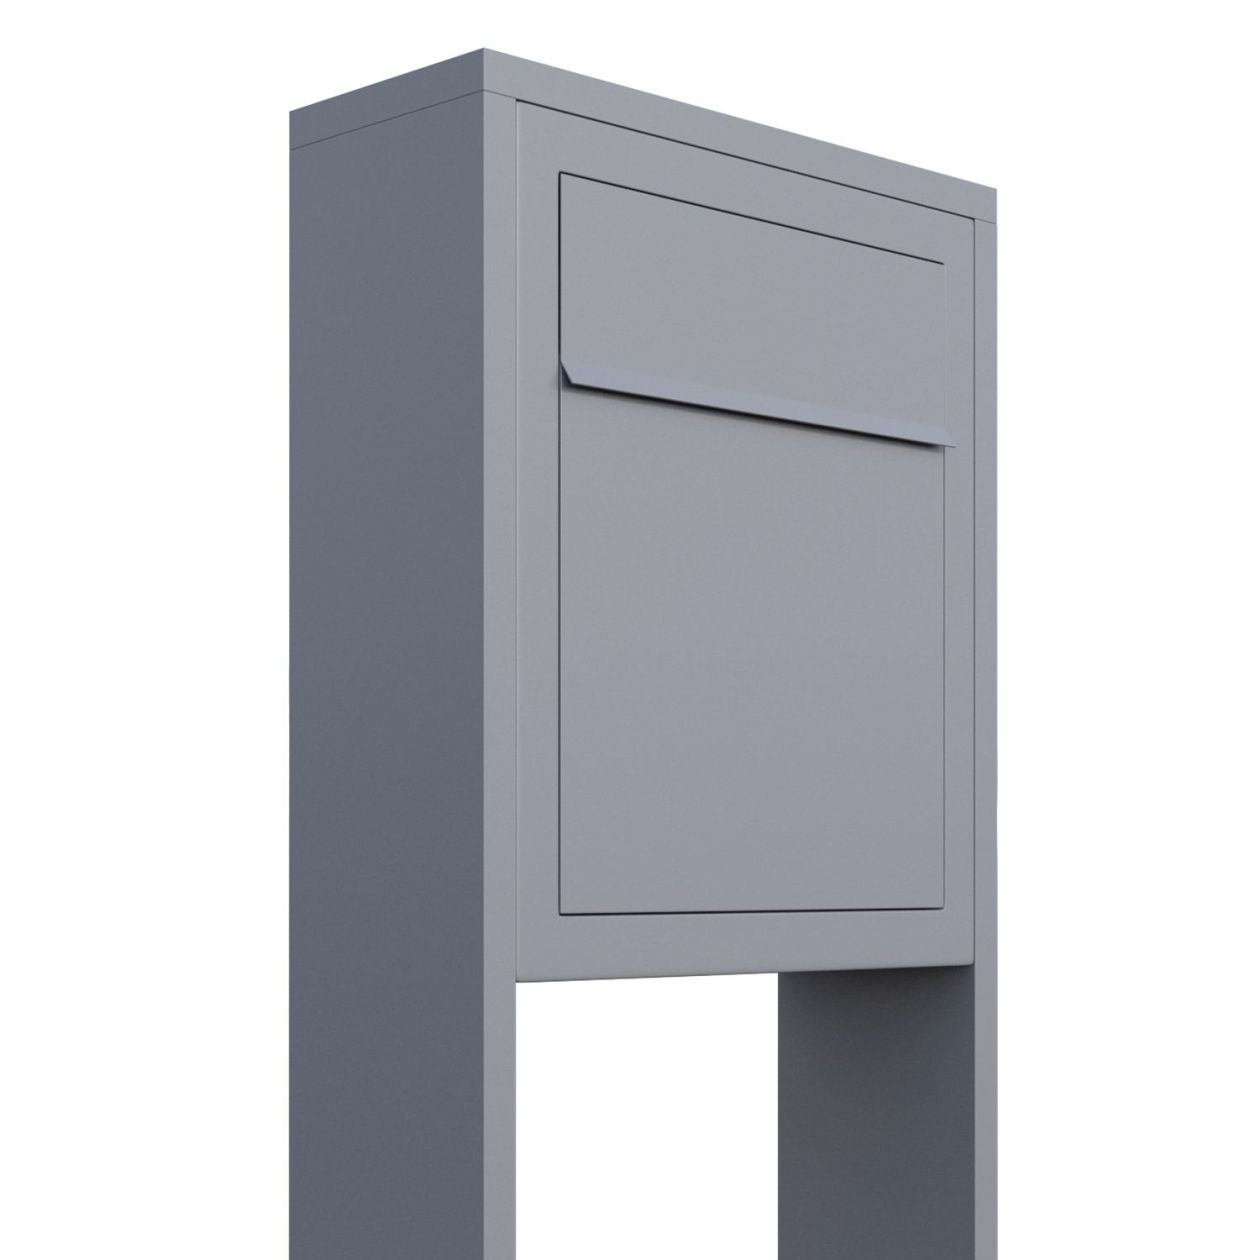 Briefkasten Design Standbriefkasten Base Grau Metallic In 2019 Mail Boxes